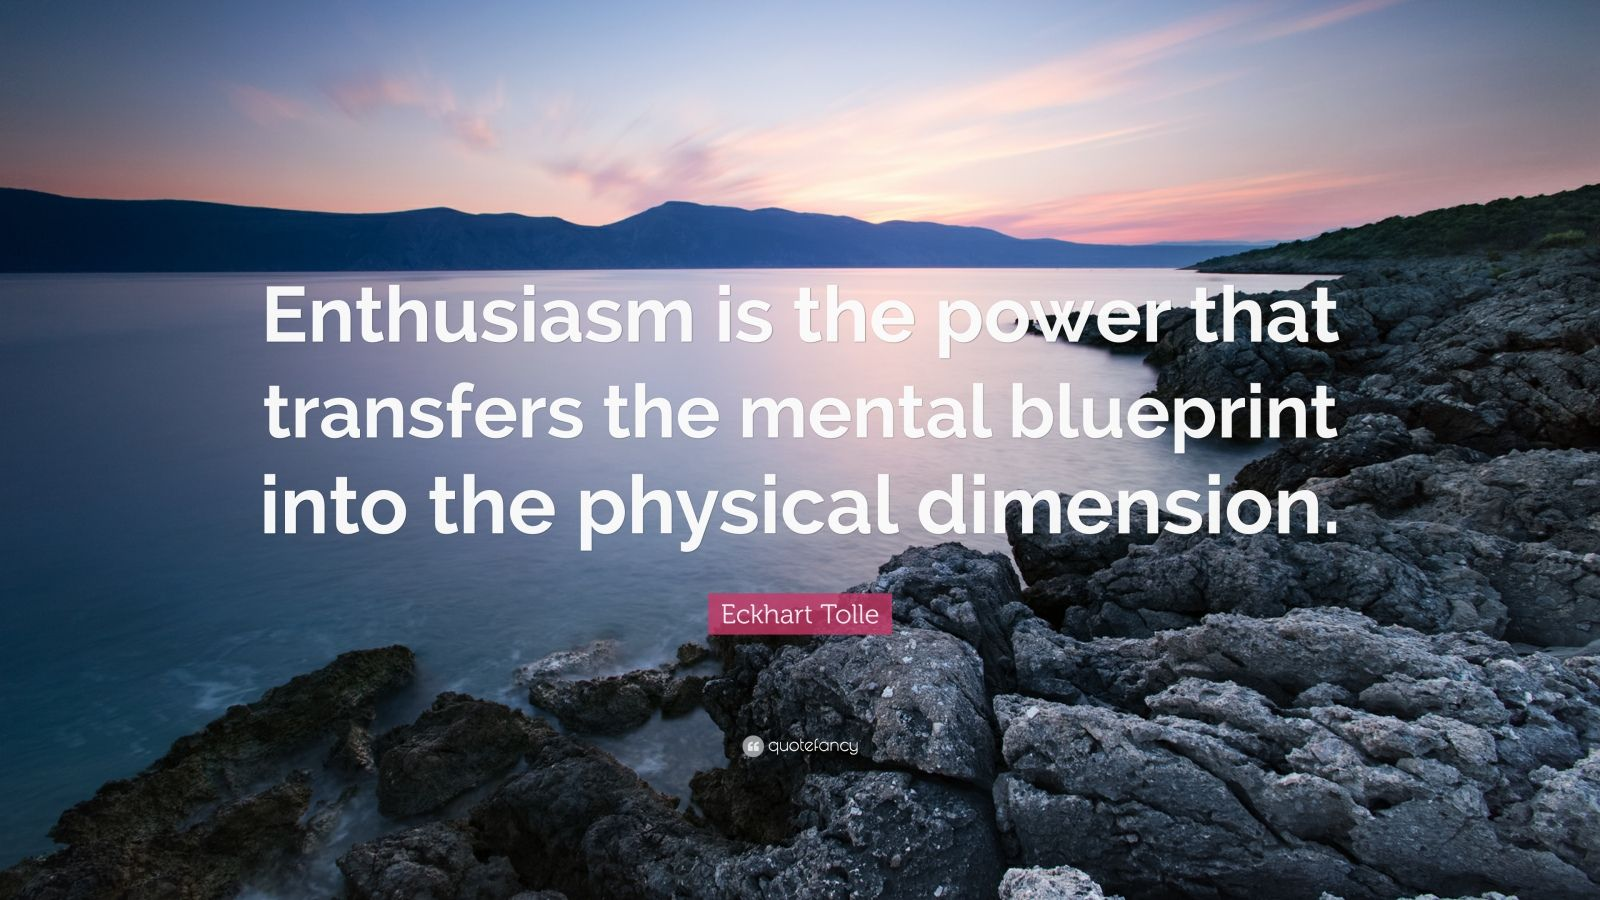 """Eckhart Tolle Quote: """"Enthusiasm is the power that transfers the mental blueprint into the physical dimension."""""""